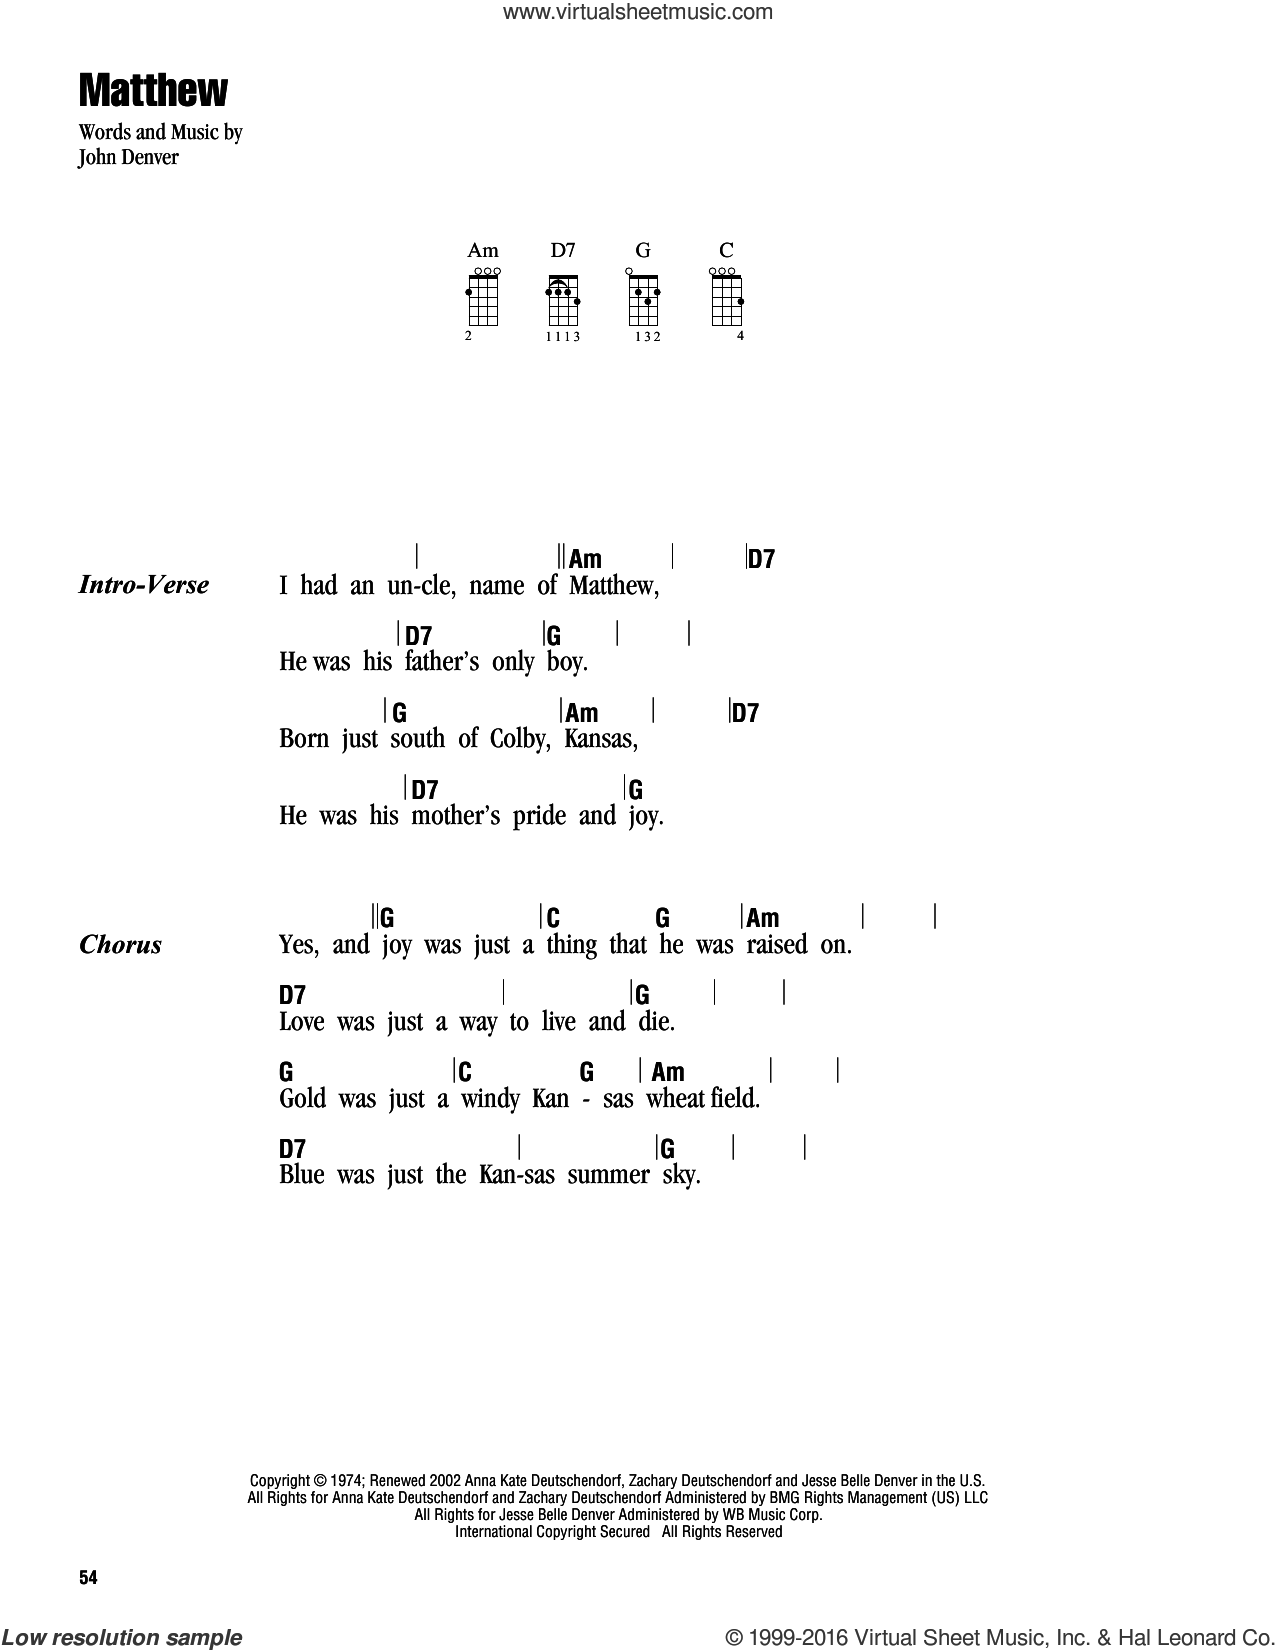 Denver - Matthew sheet music for ukulele (chords) [PDF]